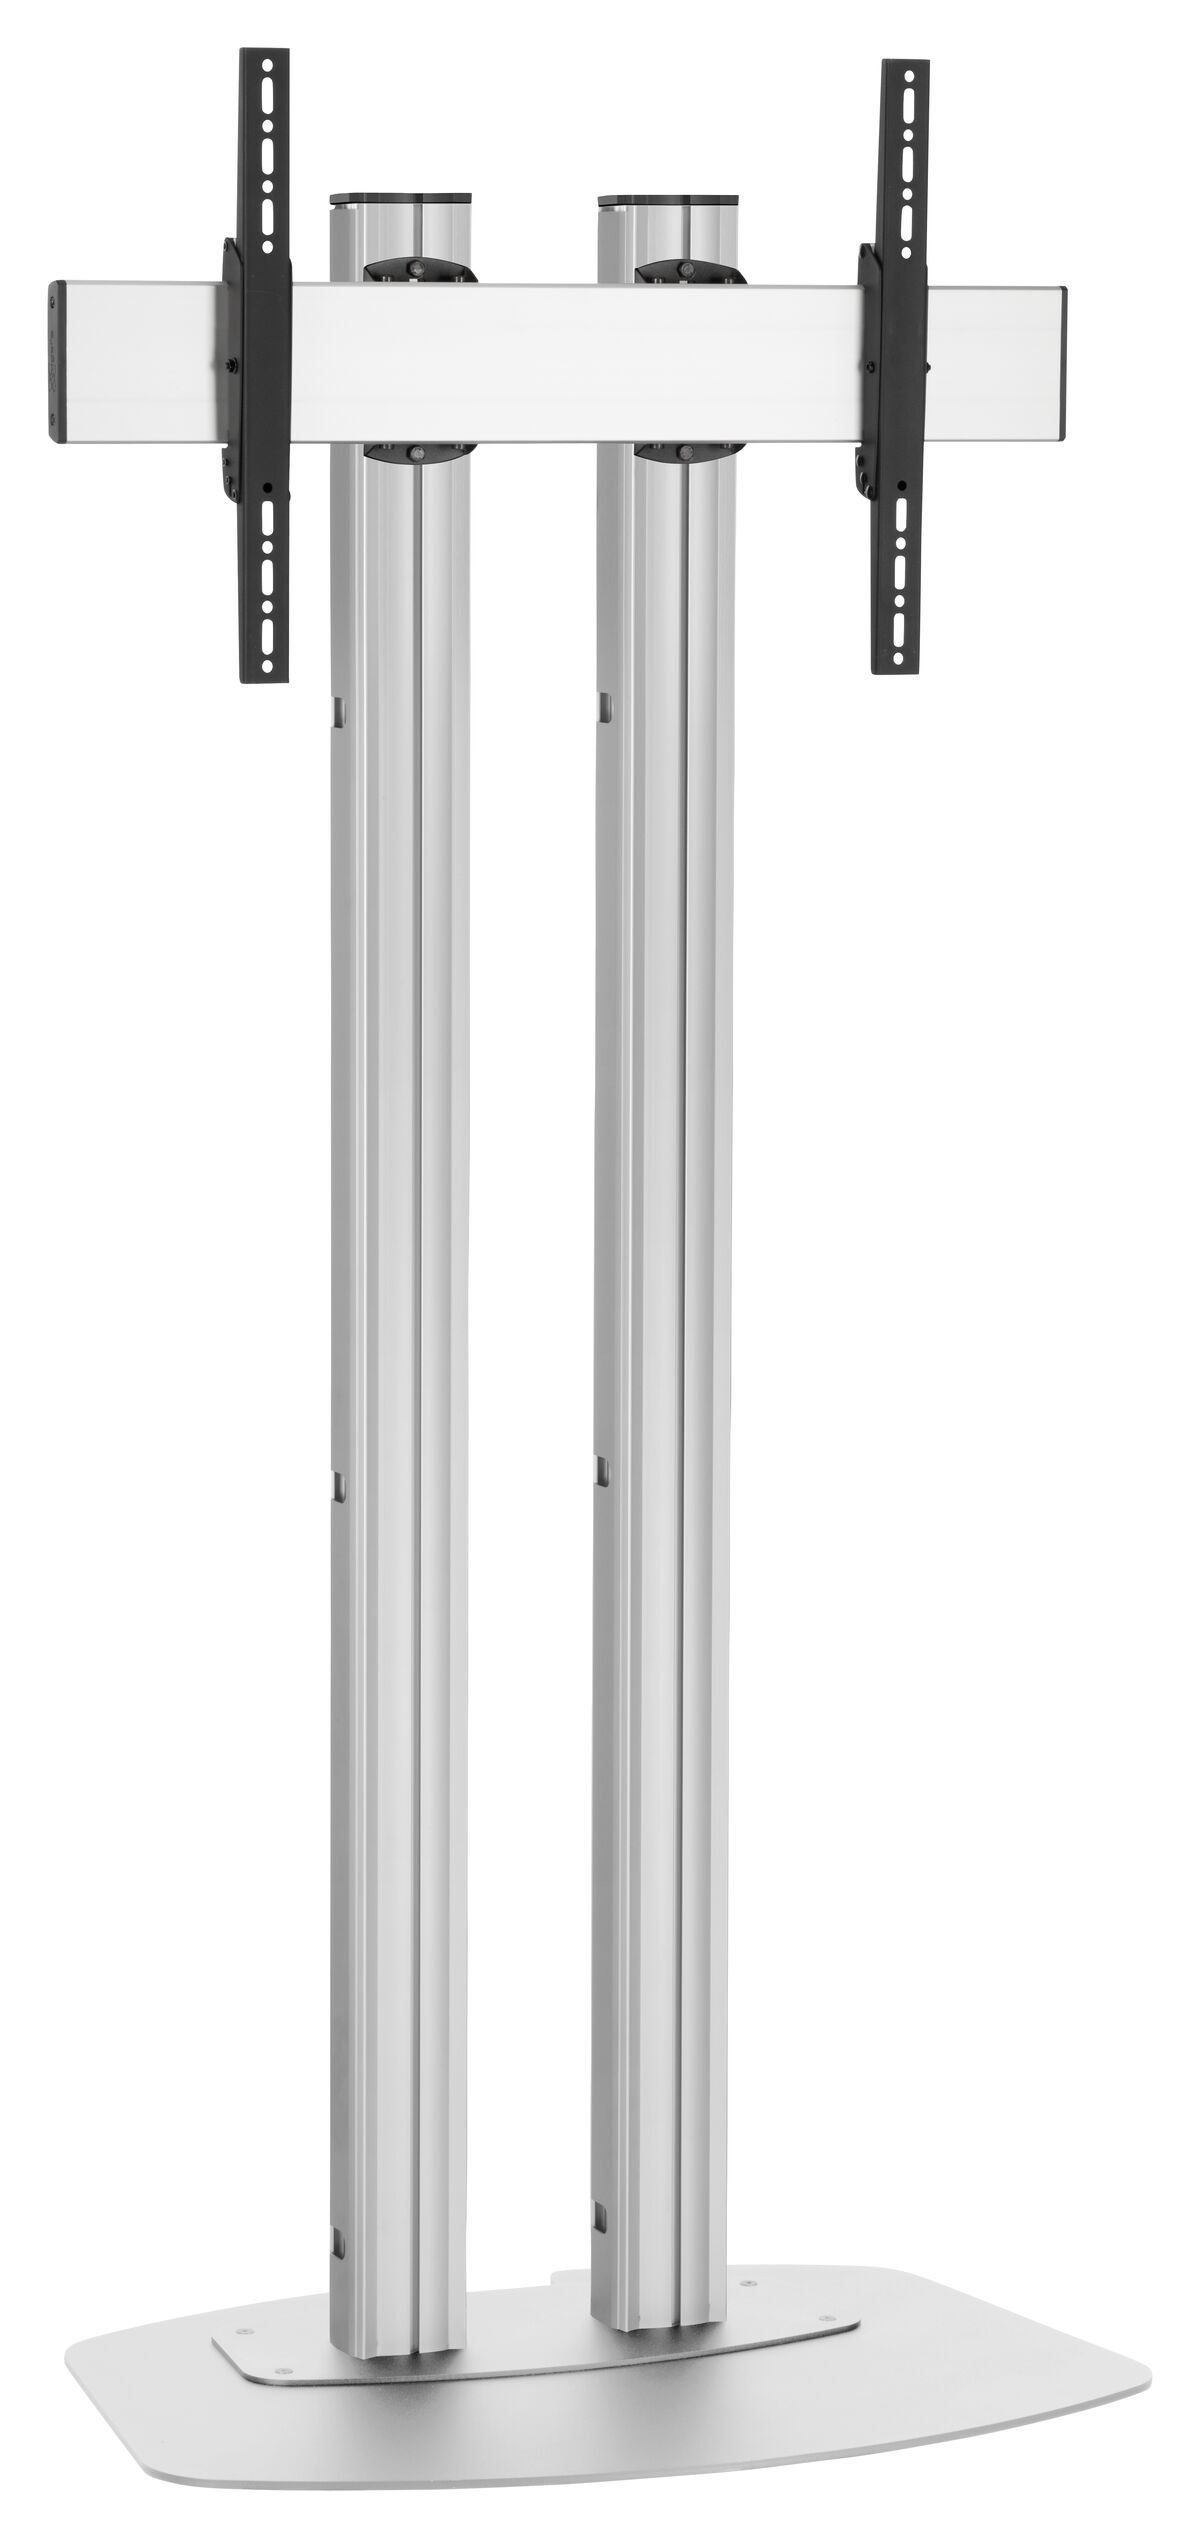 Vogel's FD1884S Floor stand - Product